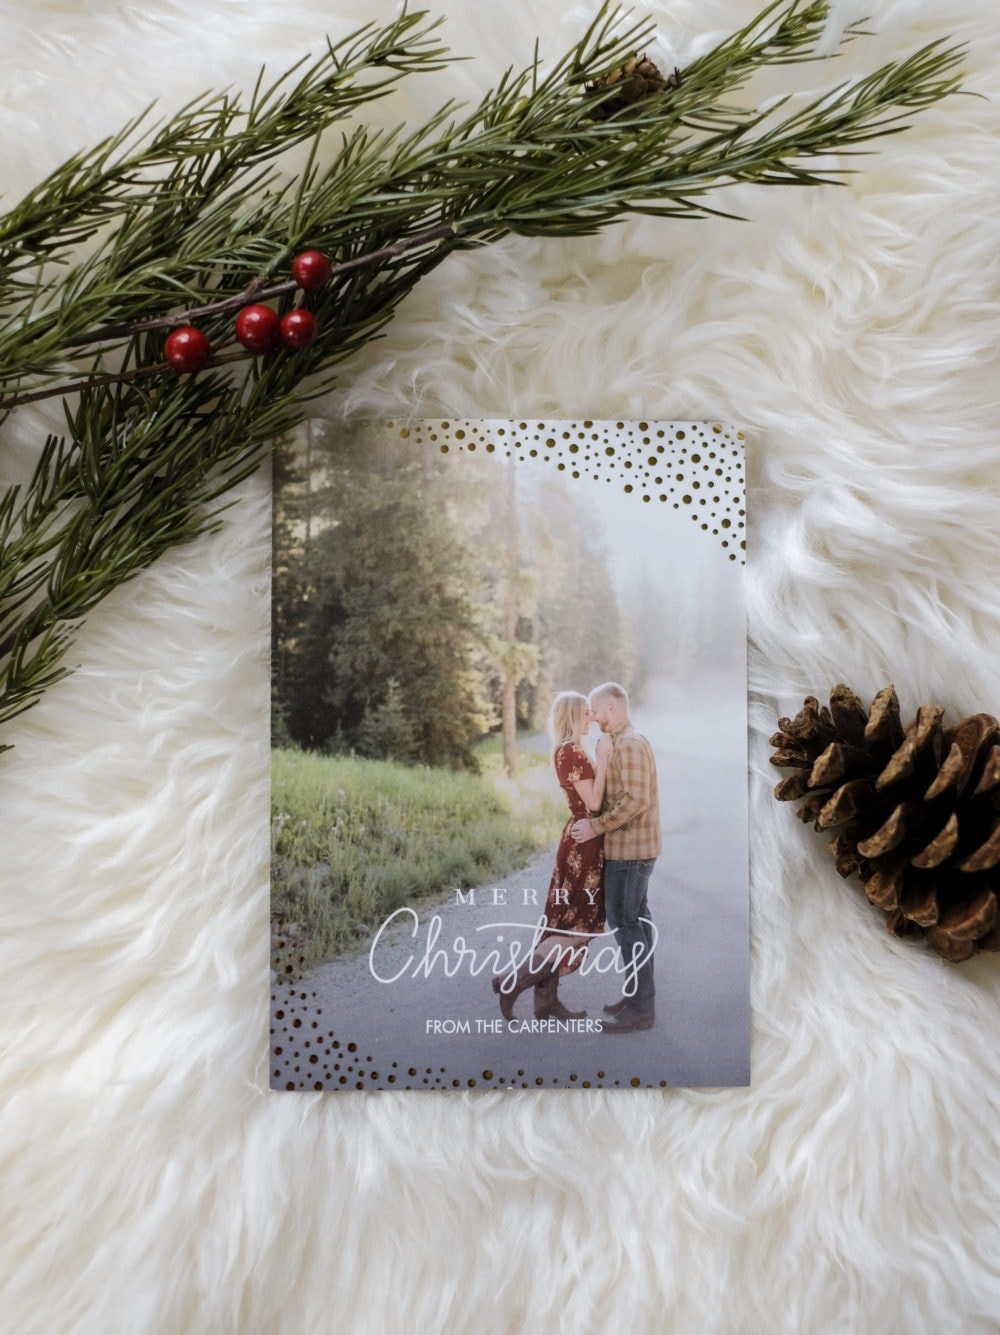 A personalized Christmas card laying on a white sheepskin rug next to greenery and a pinecone